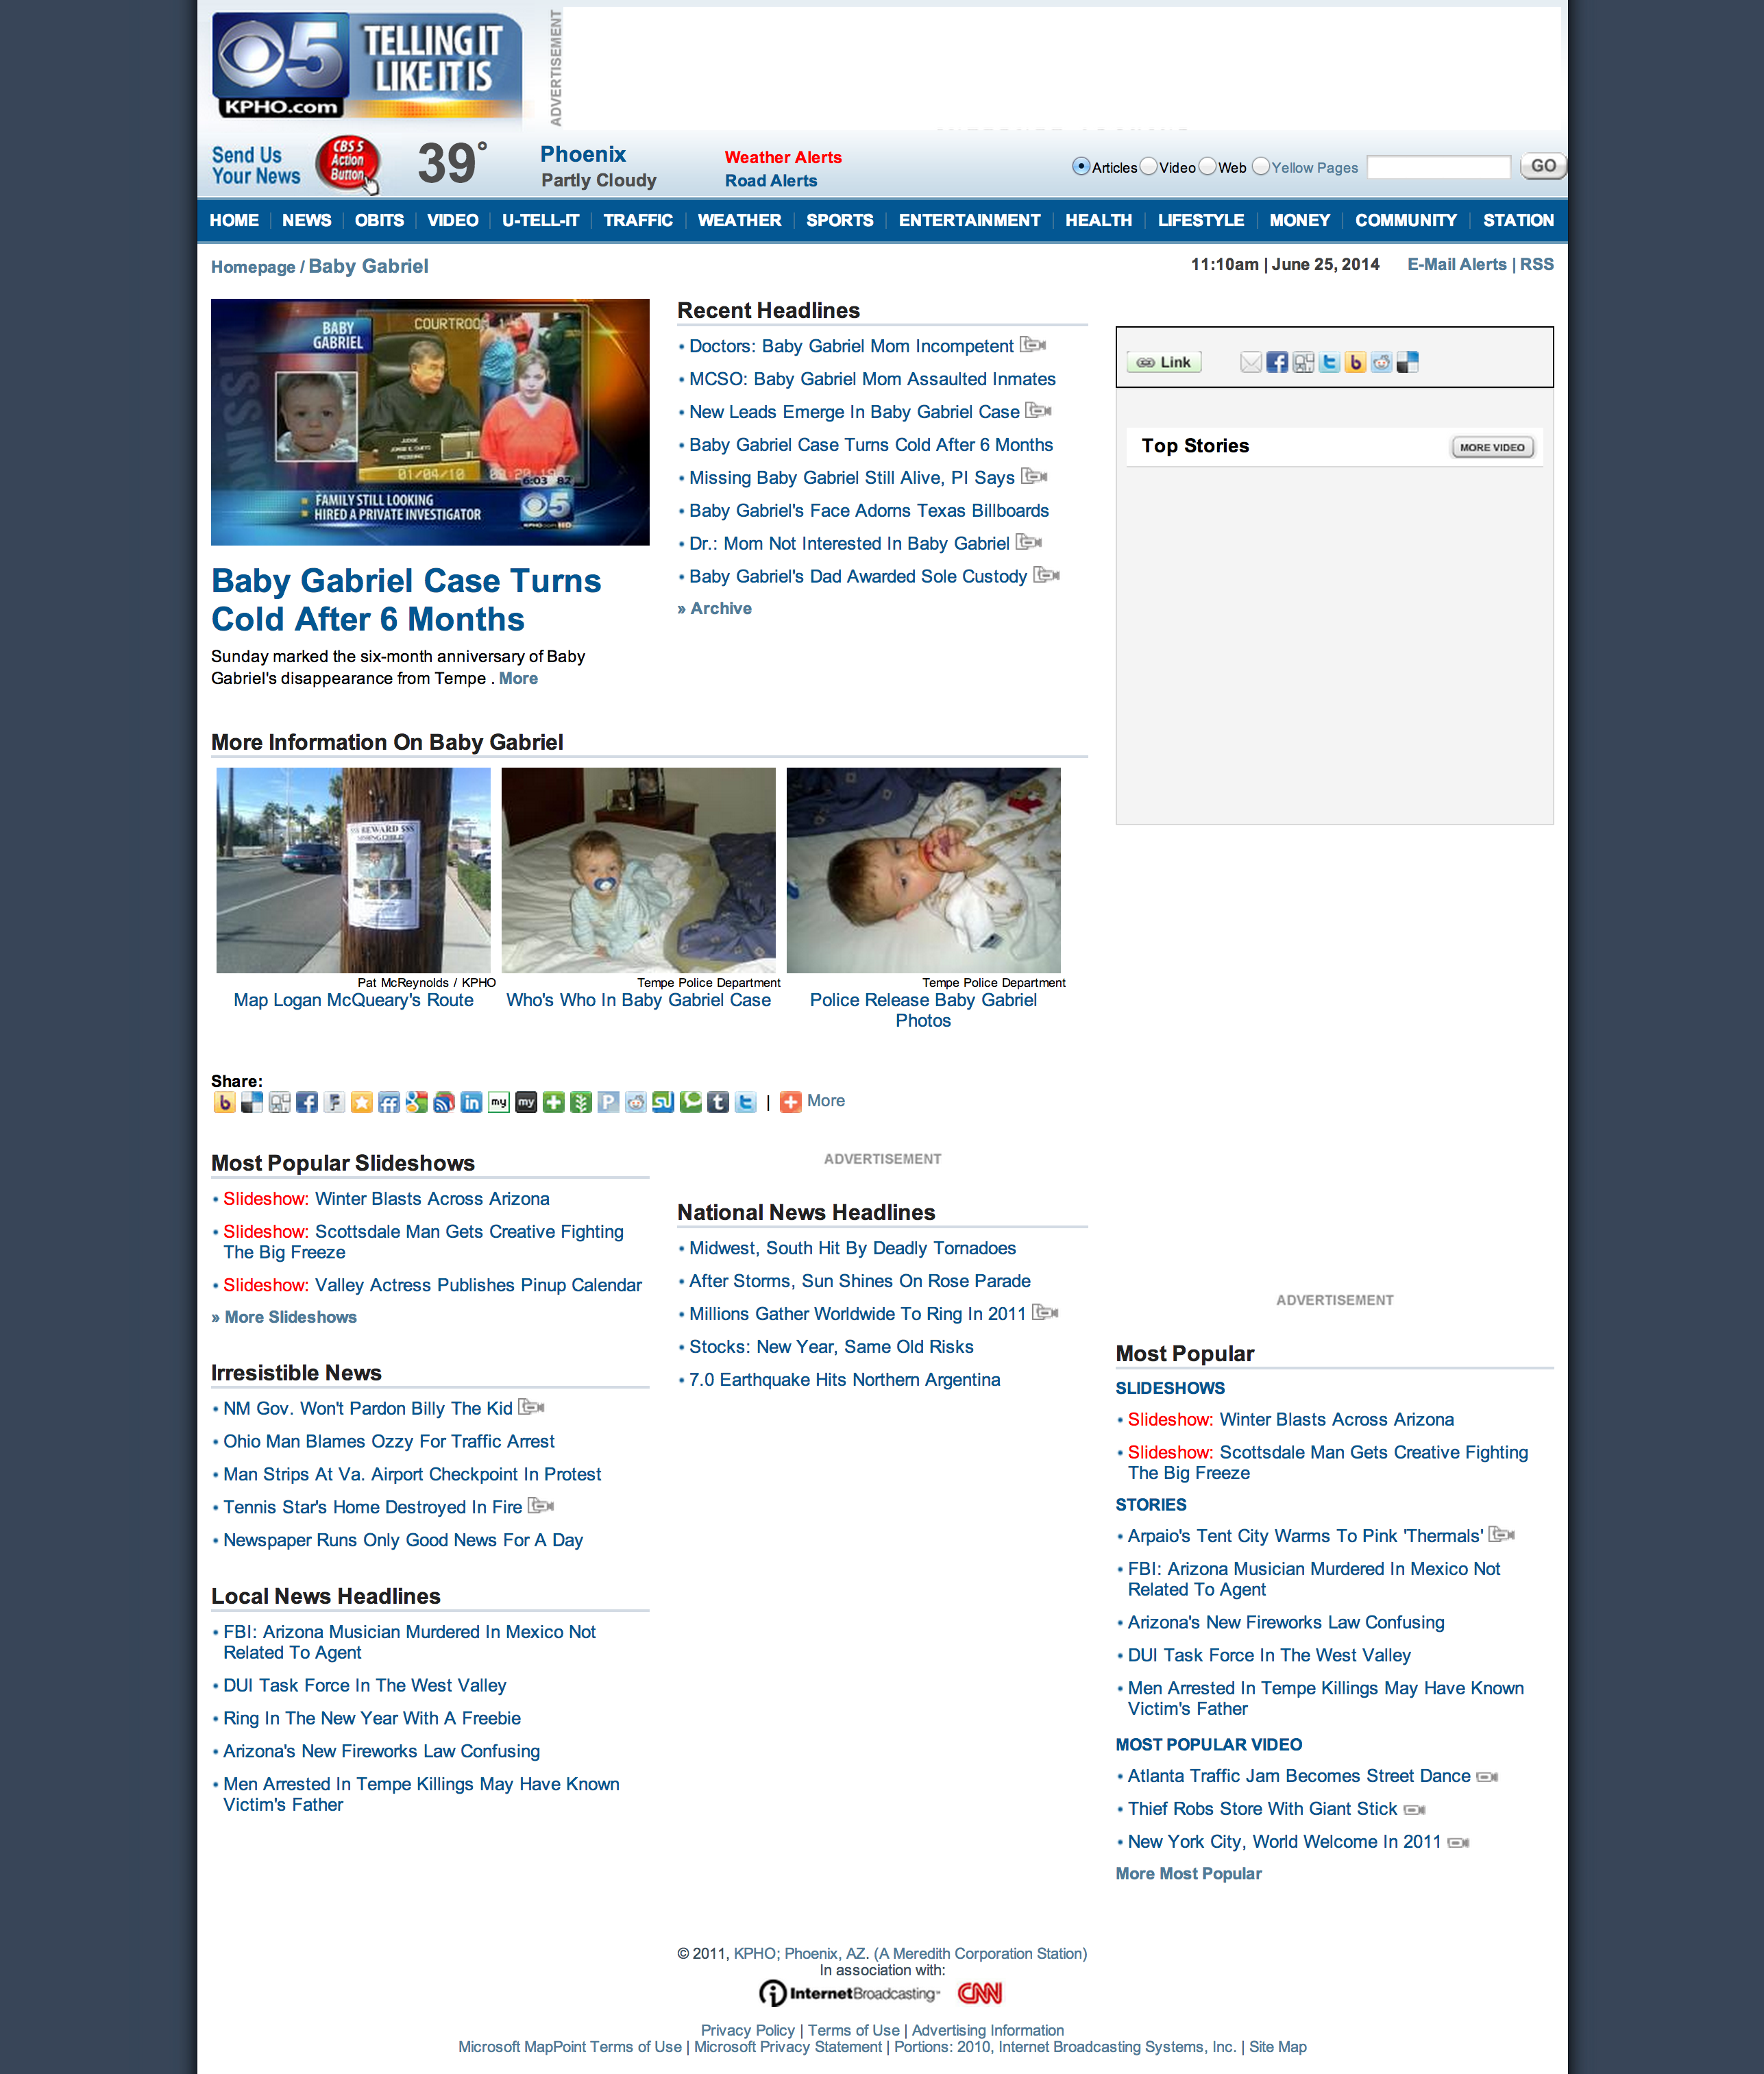 Screenshot from archive.org of special section on KPHO.com dedicated to baby Gabriel Johnson.